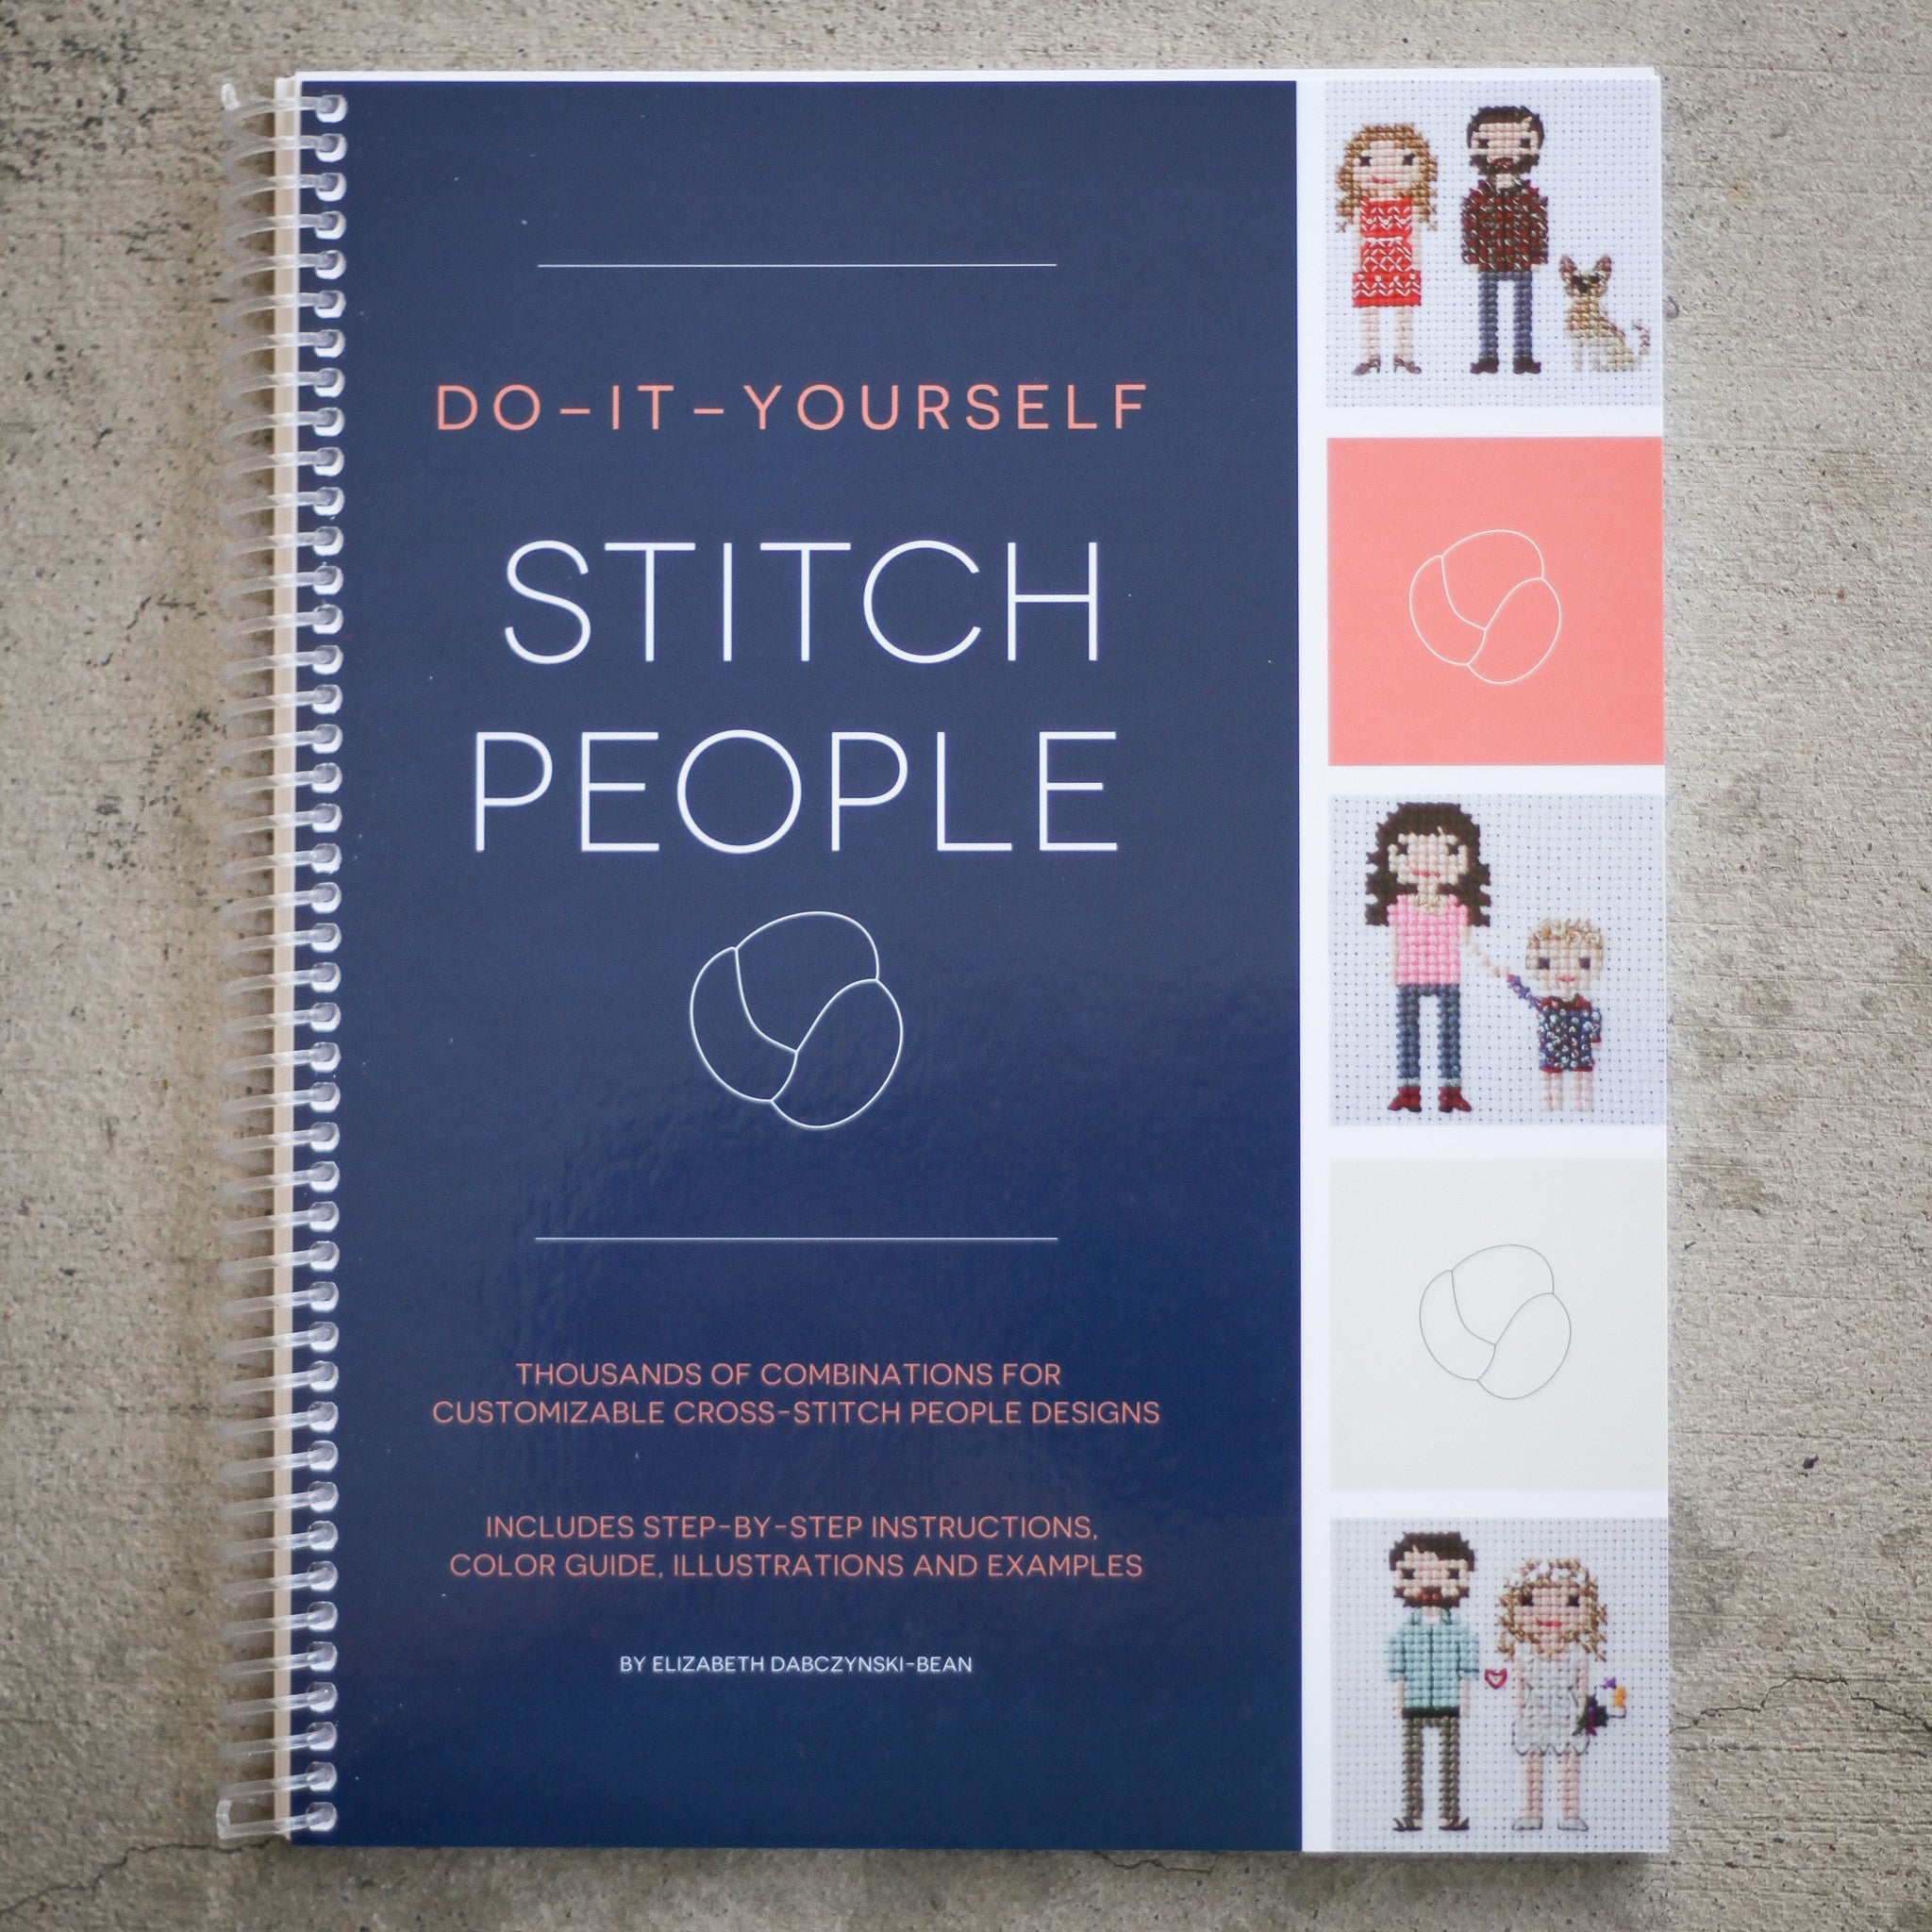 Diy stitch people book cross stitch portrait patterns do it yourself stitch people book solutioingenieria Image collections